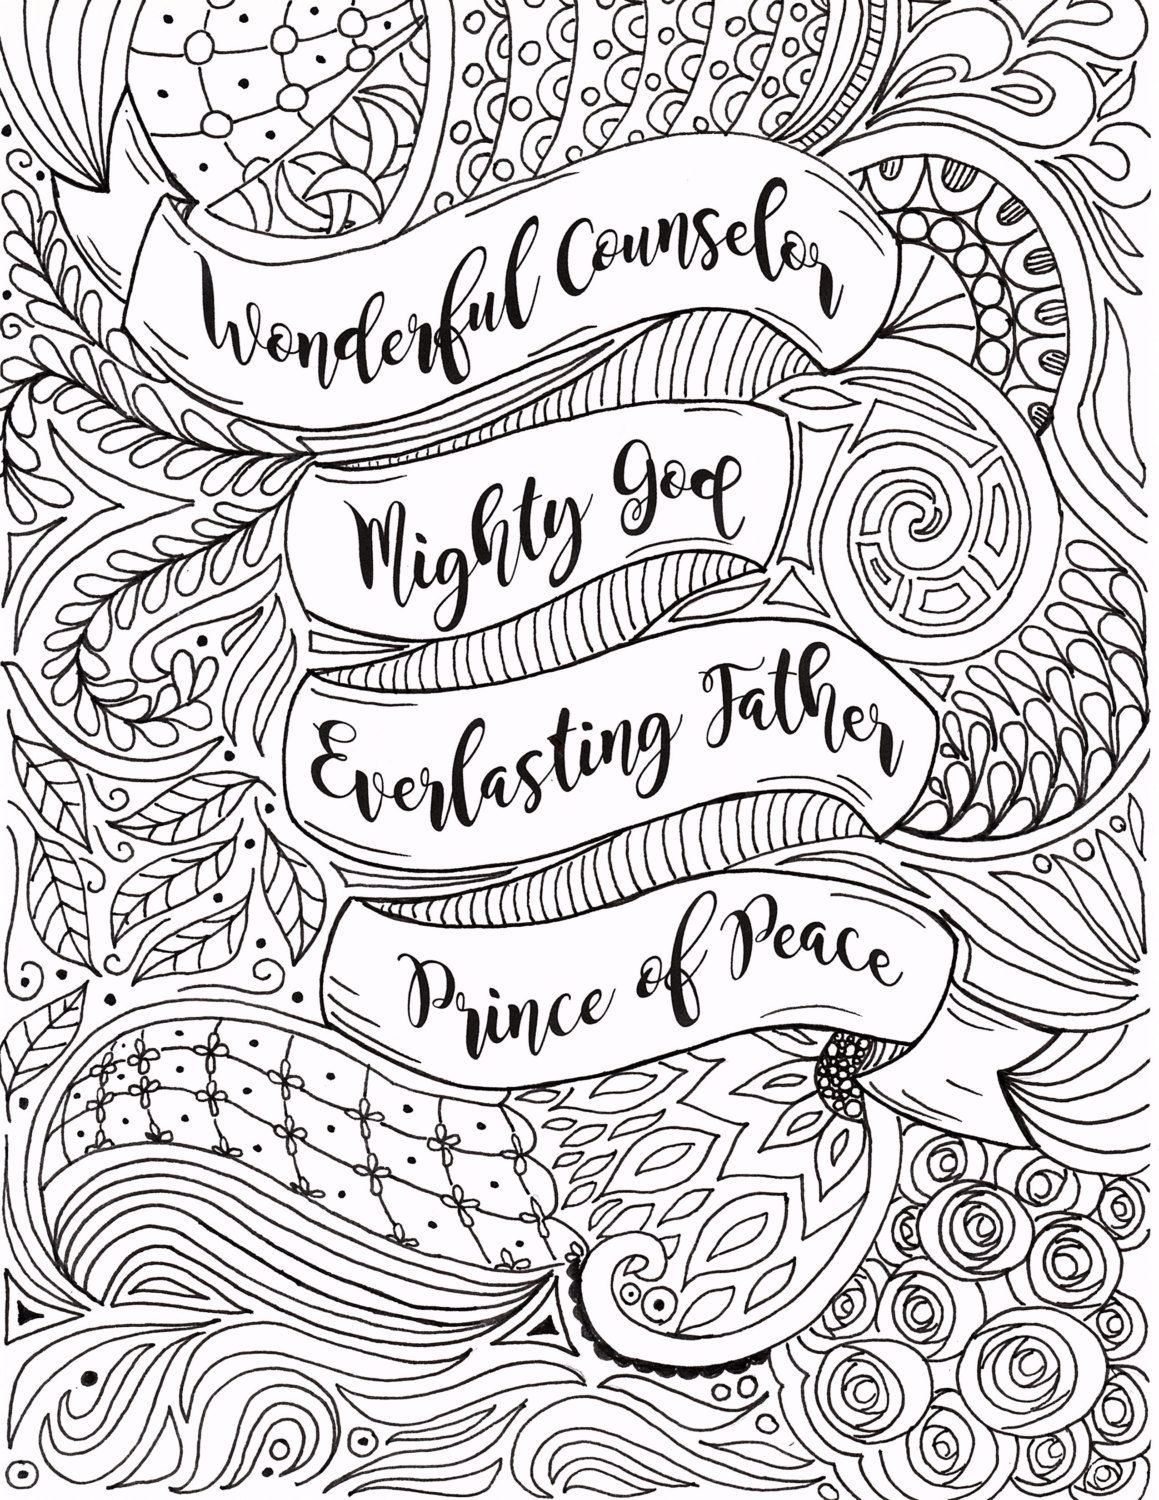 Christmas Colouring Pages Bible With Adult Coloring Page Christian By